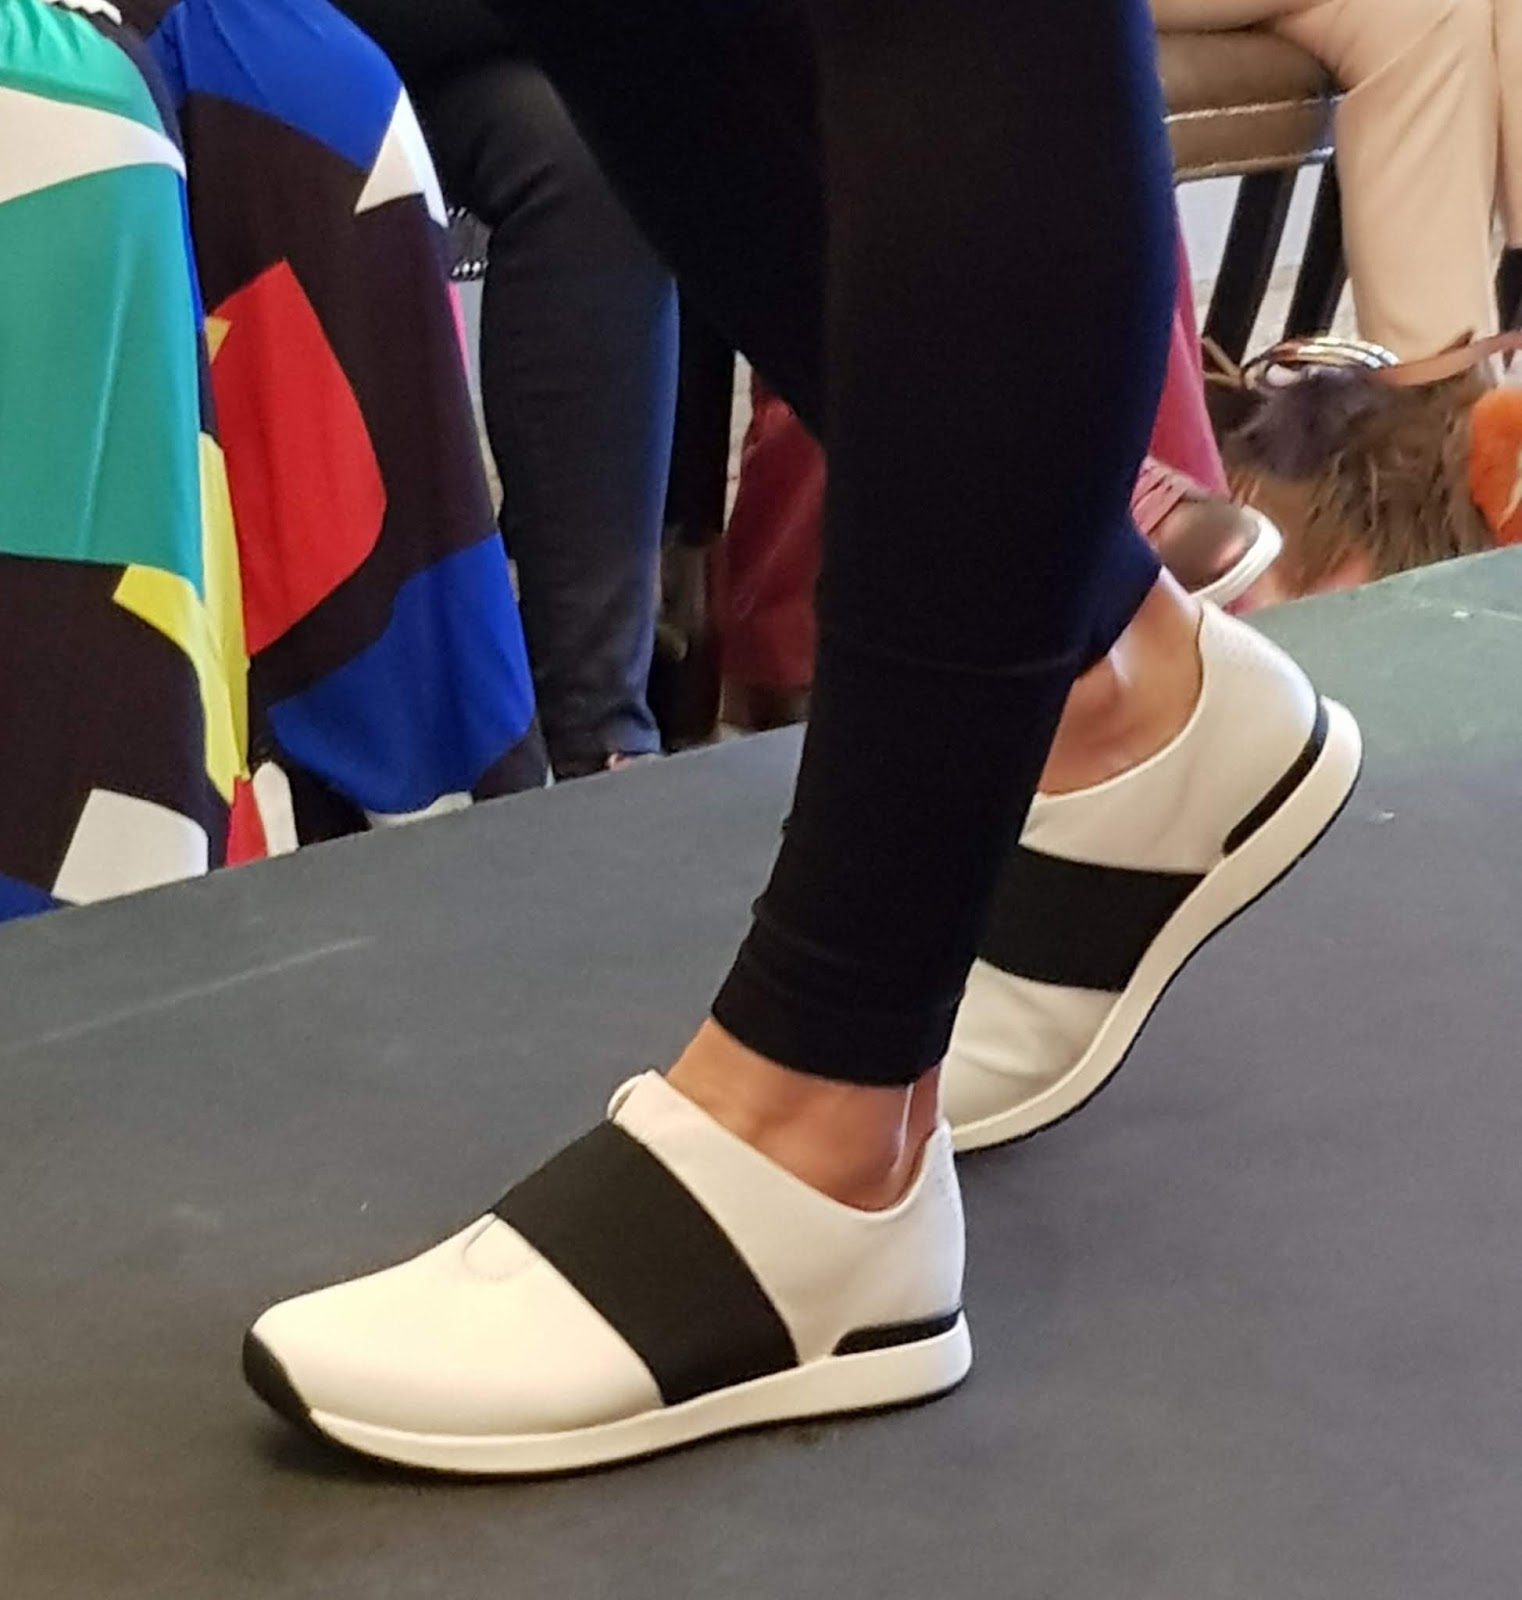 A model showing the Vionic Codie slip-on shoe in white